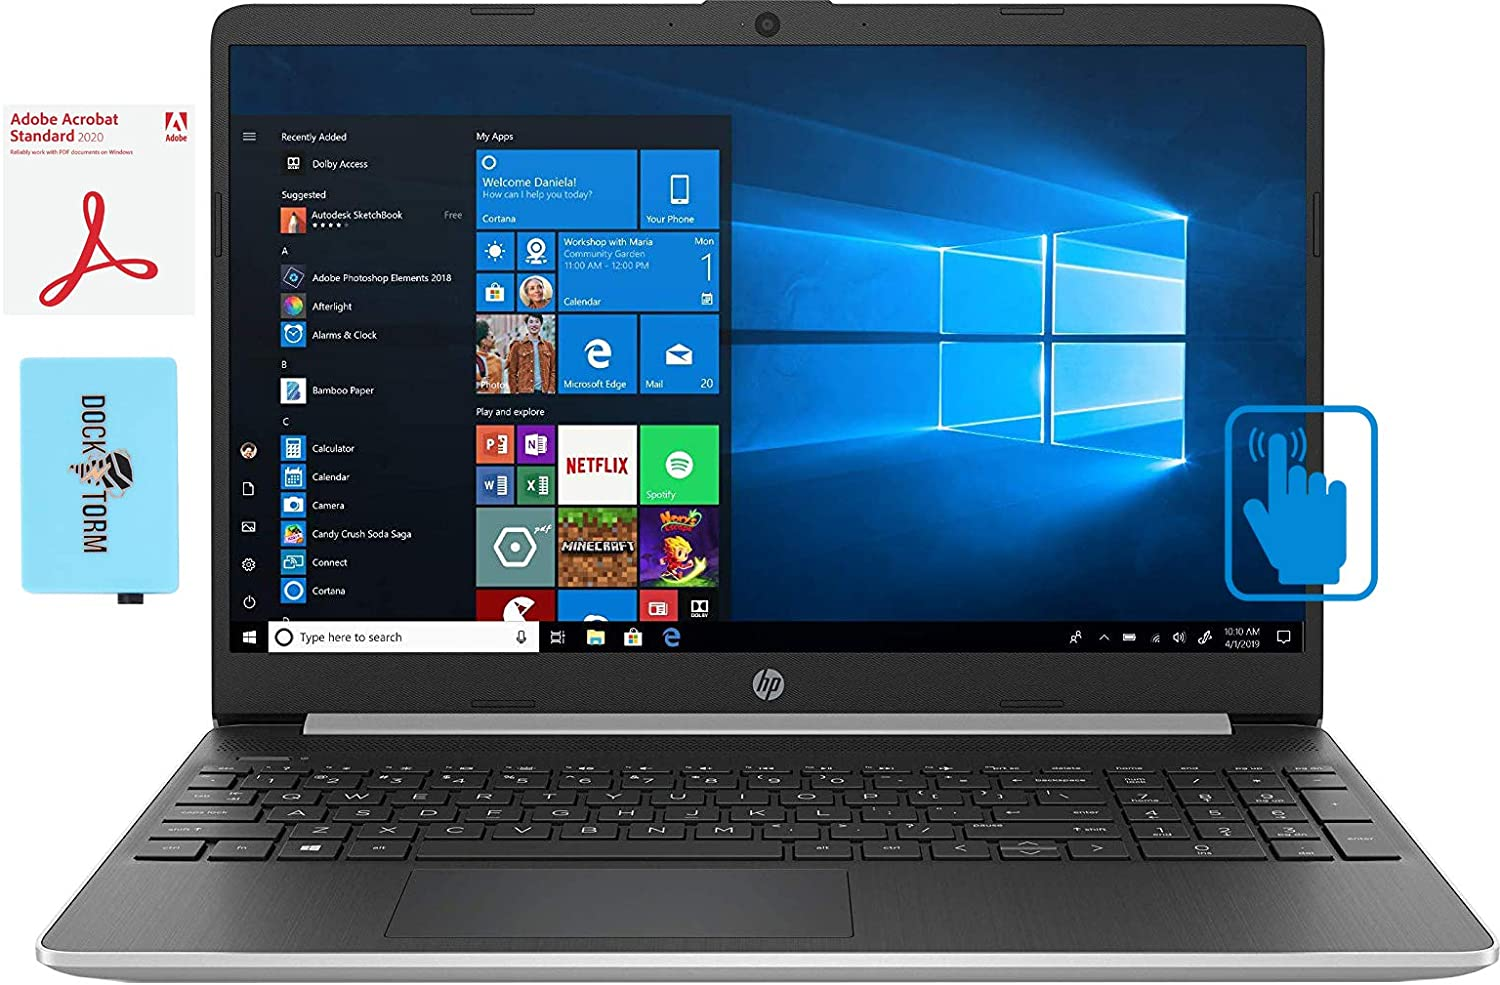 HP  Home and Business Laptop (Intel i5-1035G1 4-Core, 64GB RAM, 1TB PCIe SSD, Intel UHD Graphics, 15.6